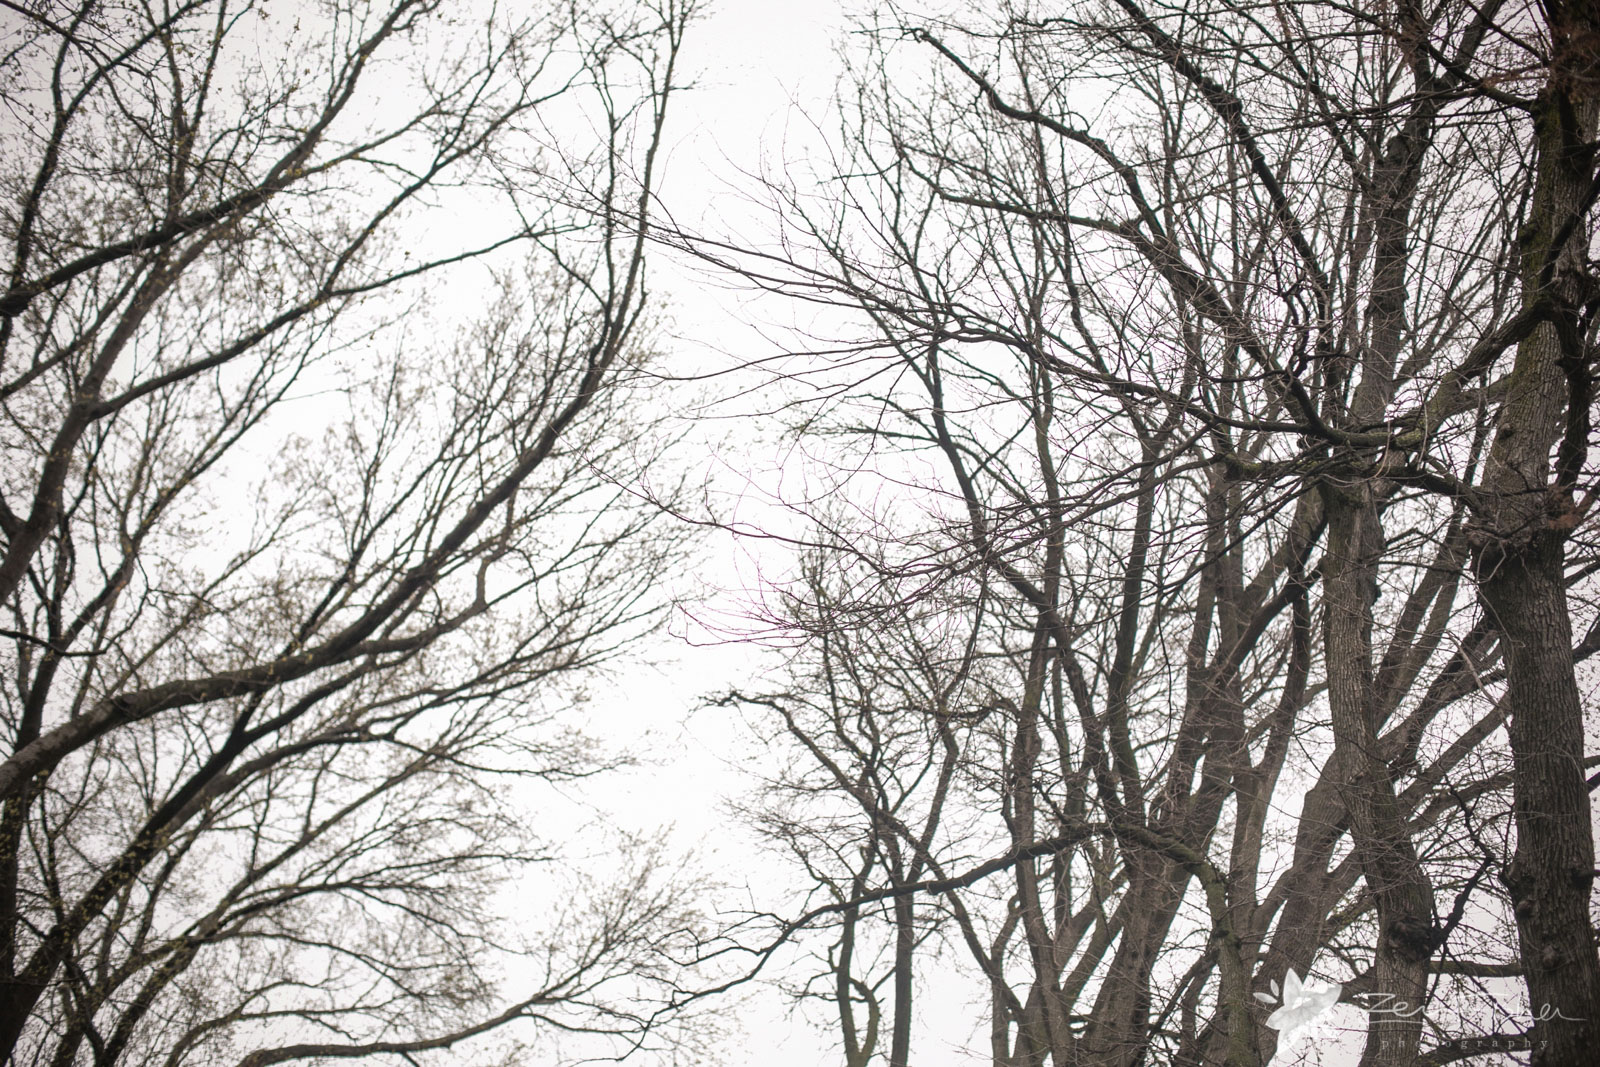 The bare branches of the trees in winter create poetic flowing lines, with an overcast sky.